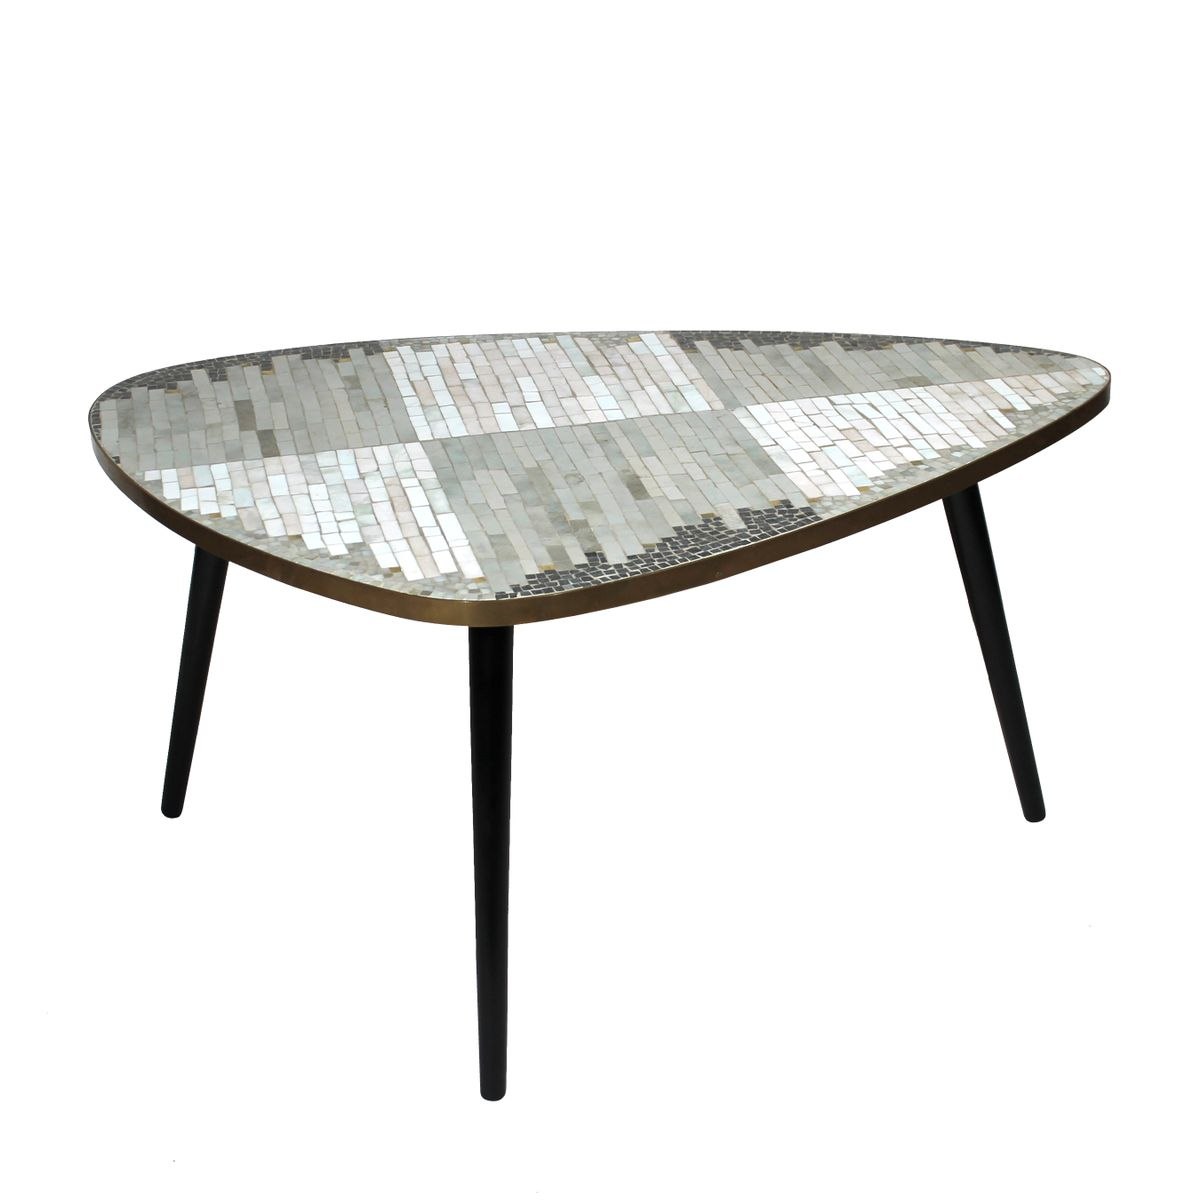 German Coffee Table With Mosaic 1950s For Sale At Pamono